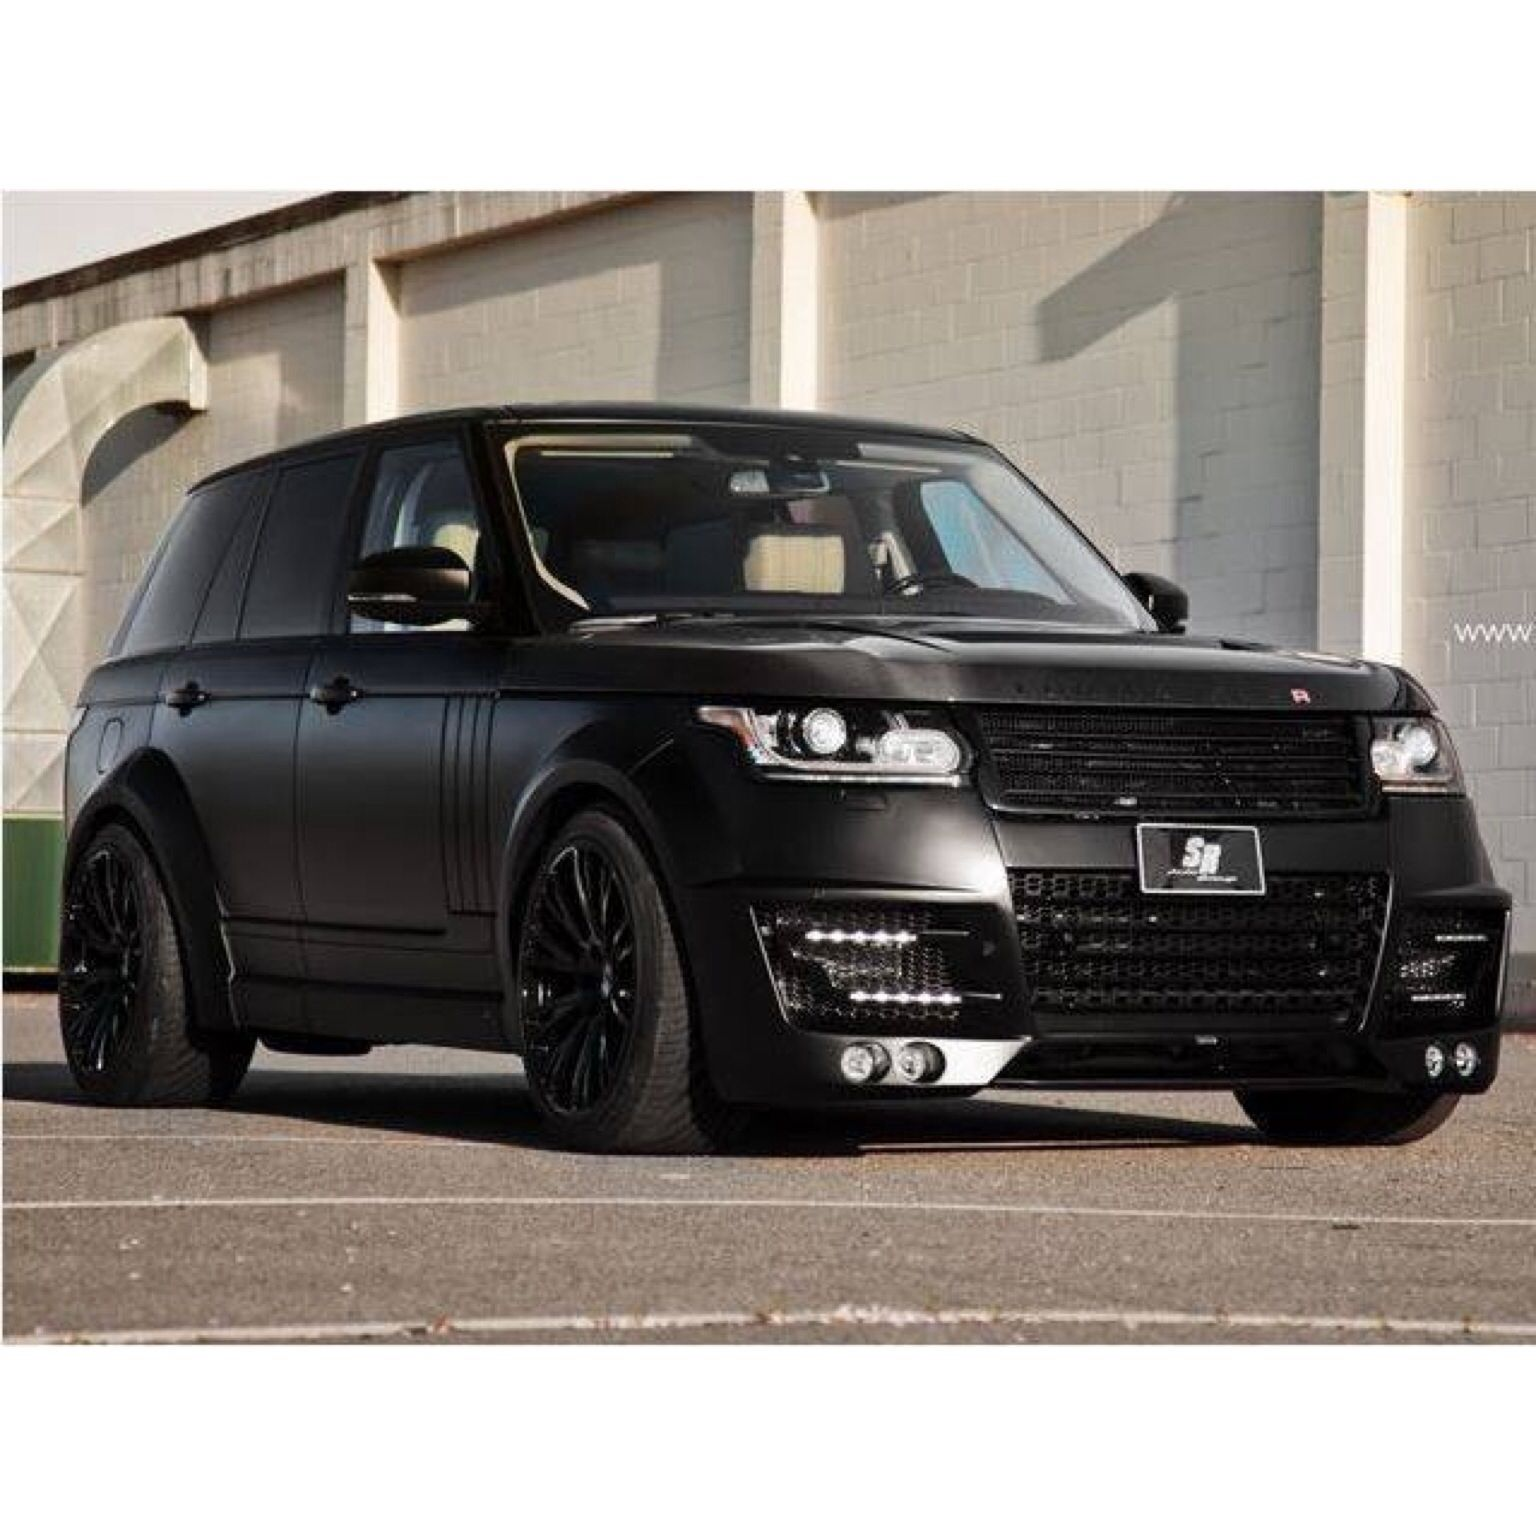 Find More 2009 Range Rover Sport Hse Automatic For Sale At: 148 New SUVs In Stock - Delray Beach